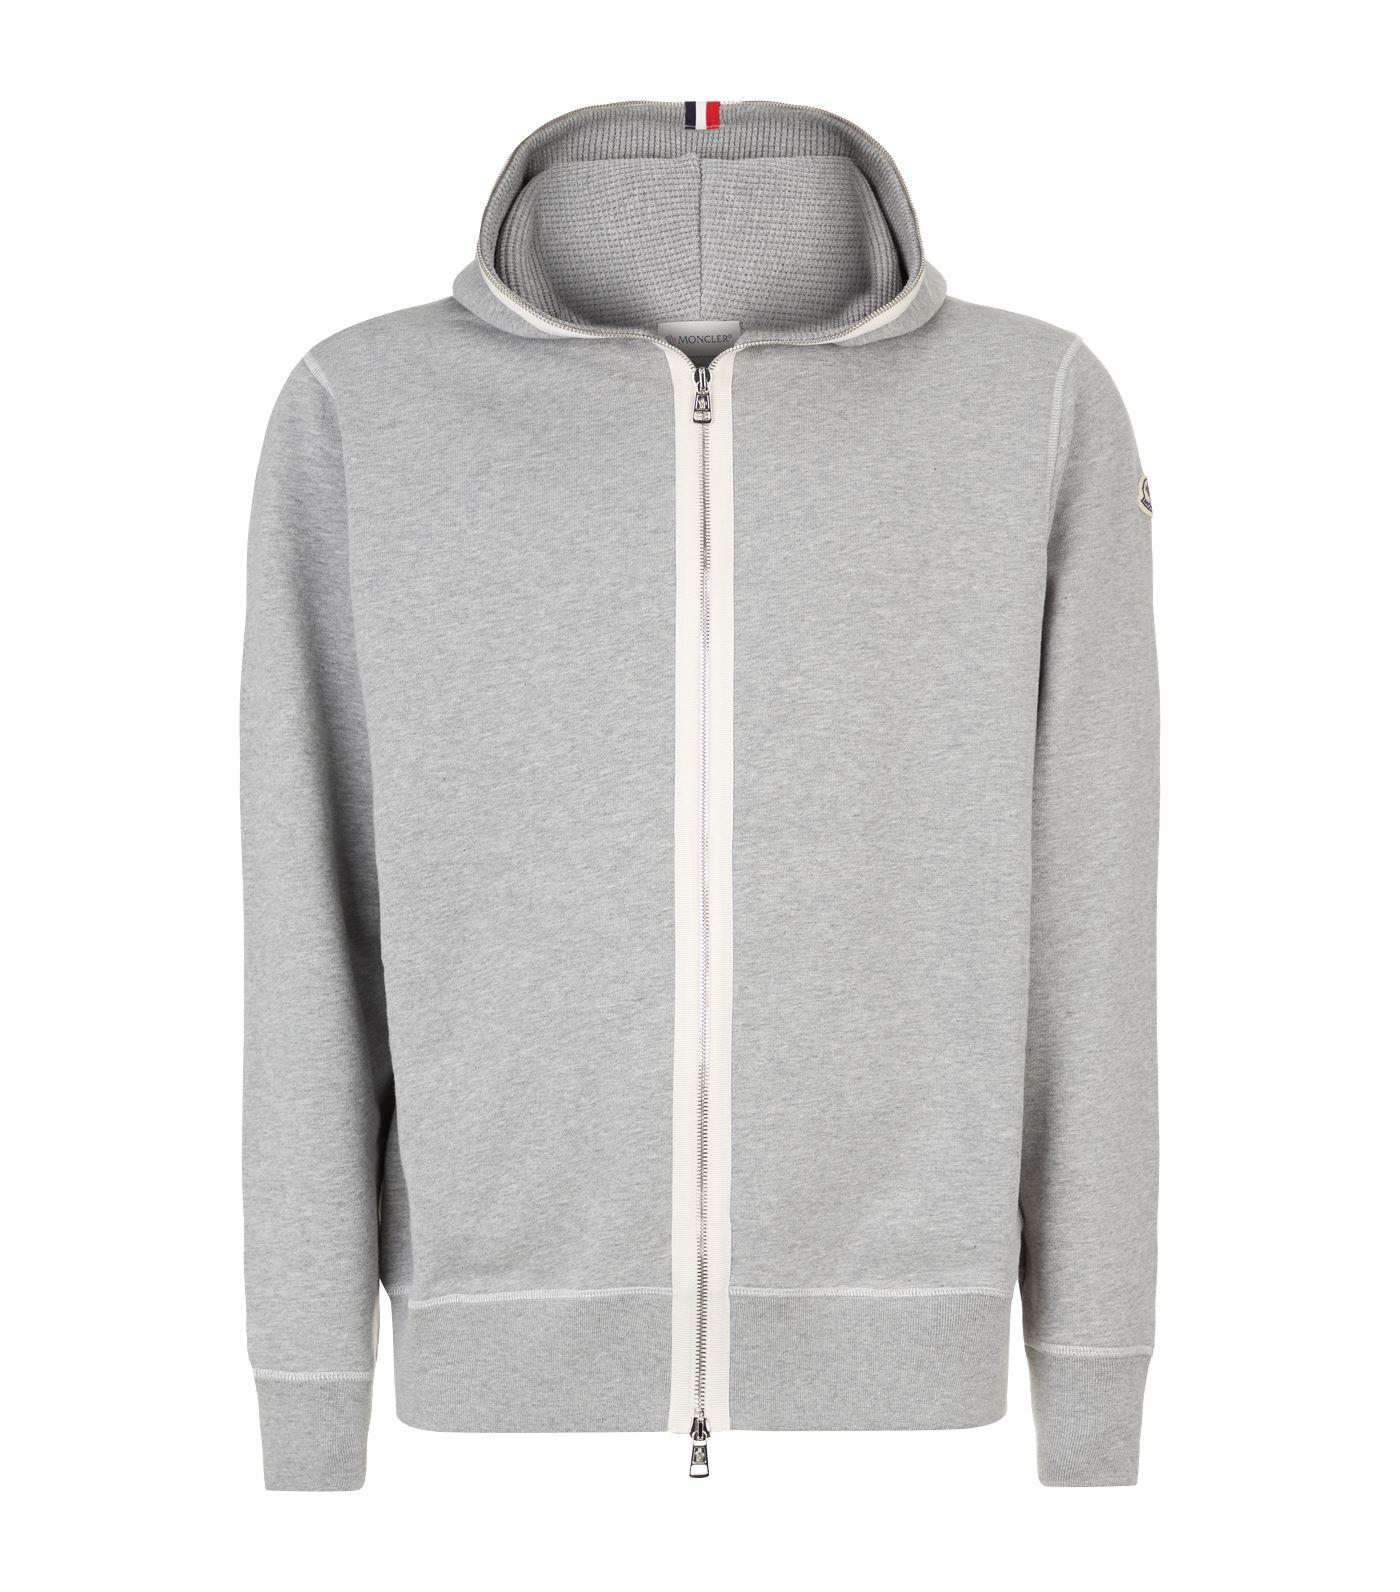 7c40ebb78 Moncler Contrast Panel Hoodie in Gray for Men - Lyst